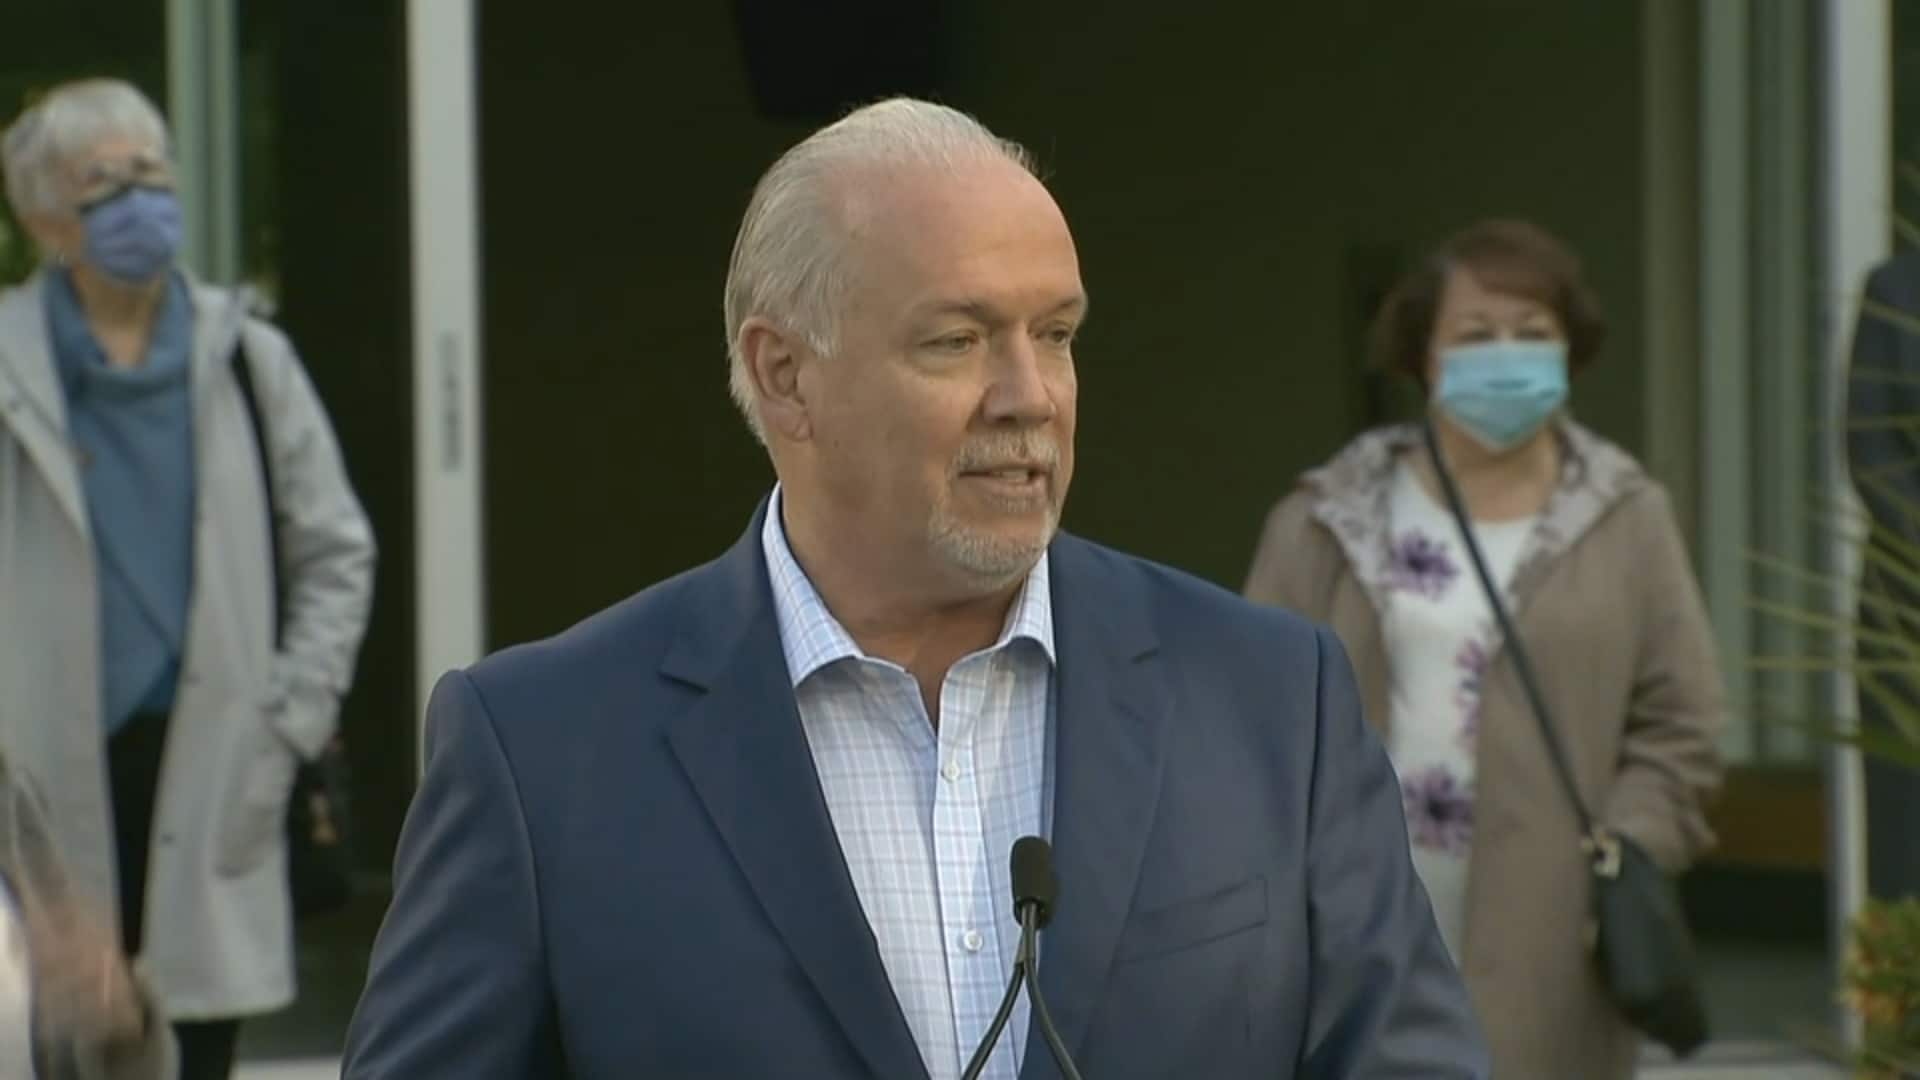 B.C. leaders' Replies on white Liberty prompt concerns Regarding their grasp of racism issues thumbnail